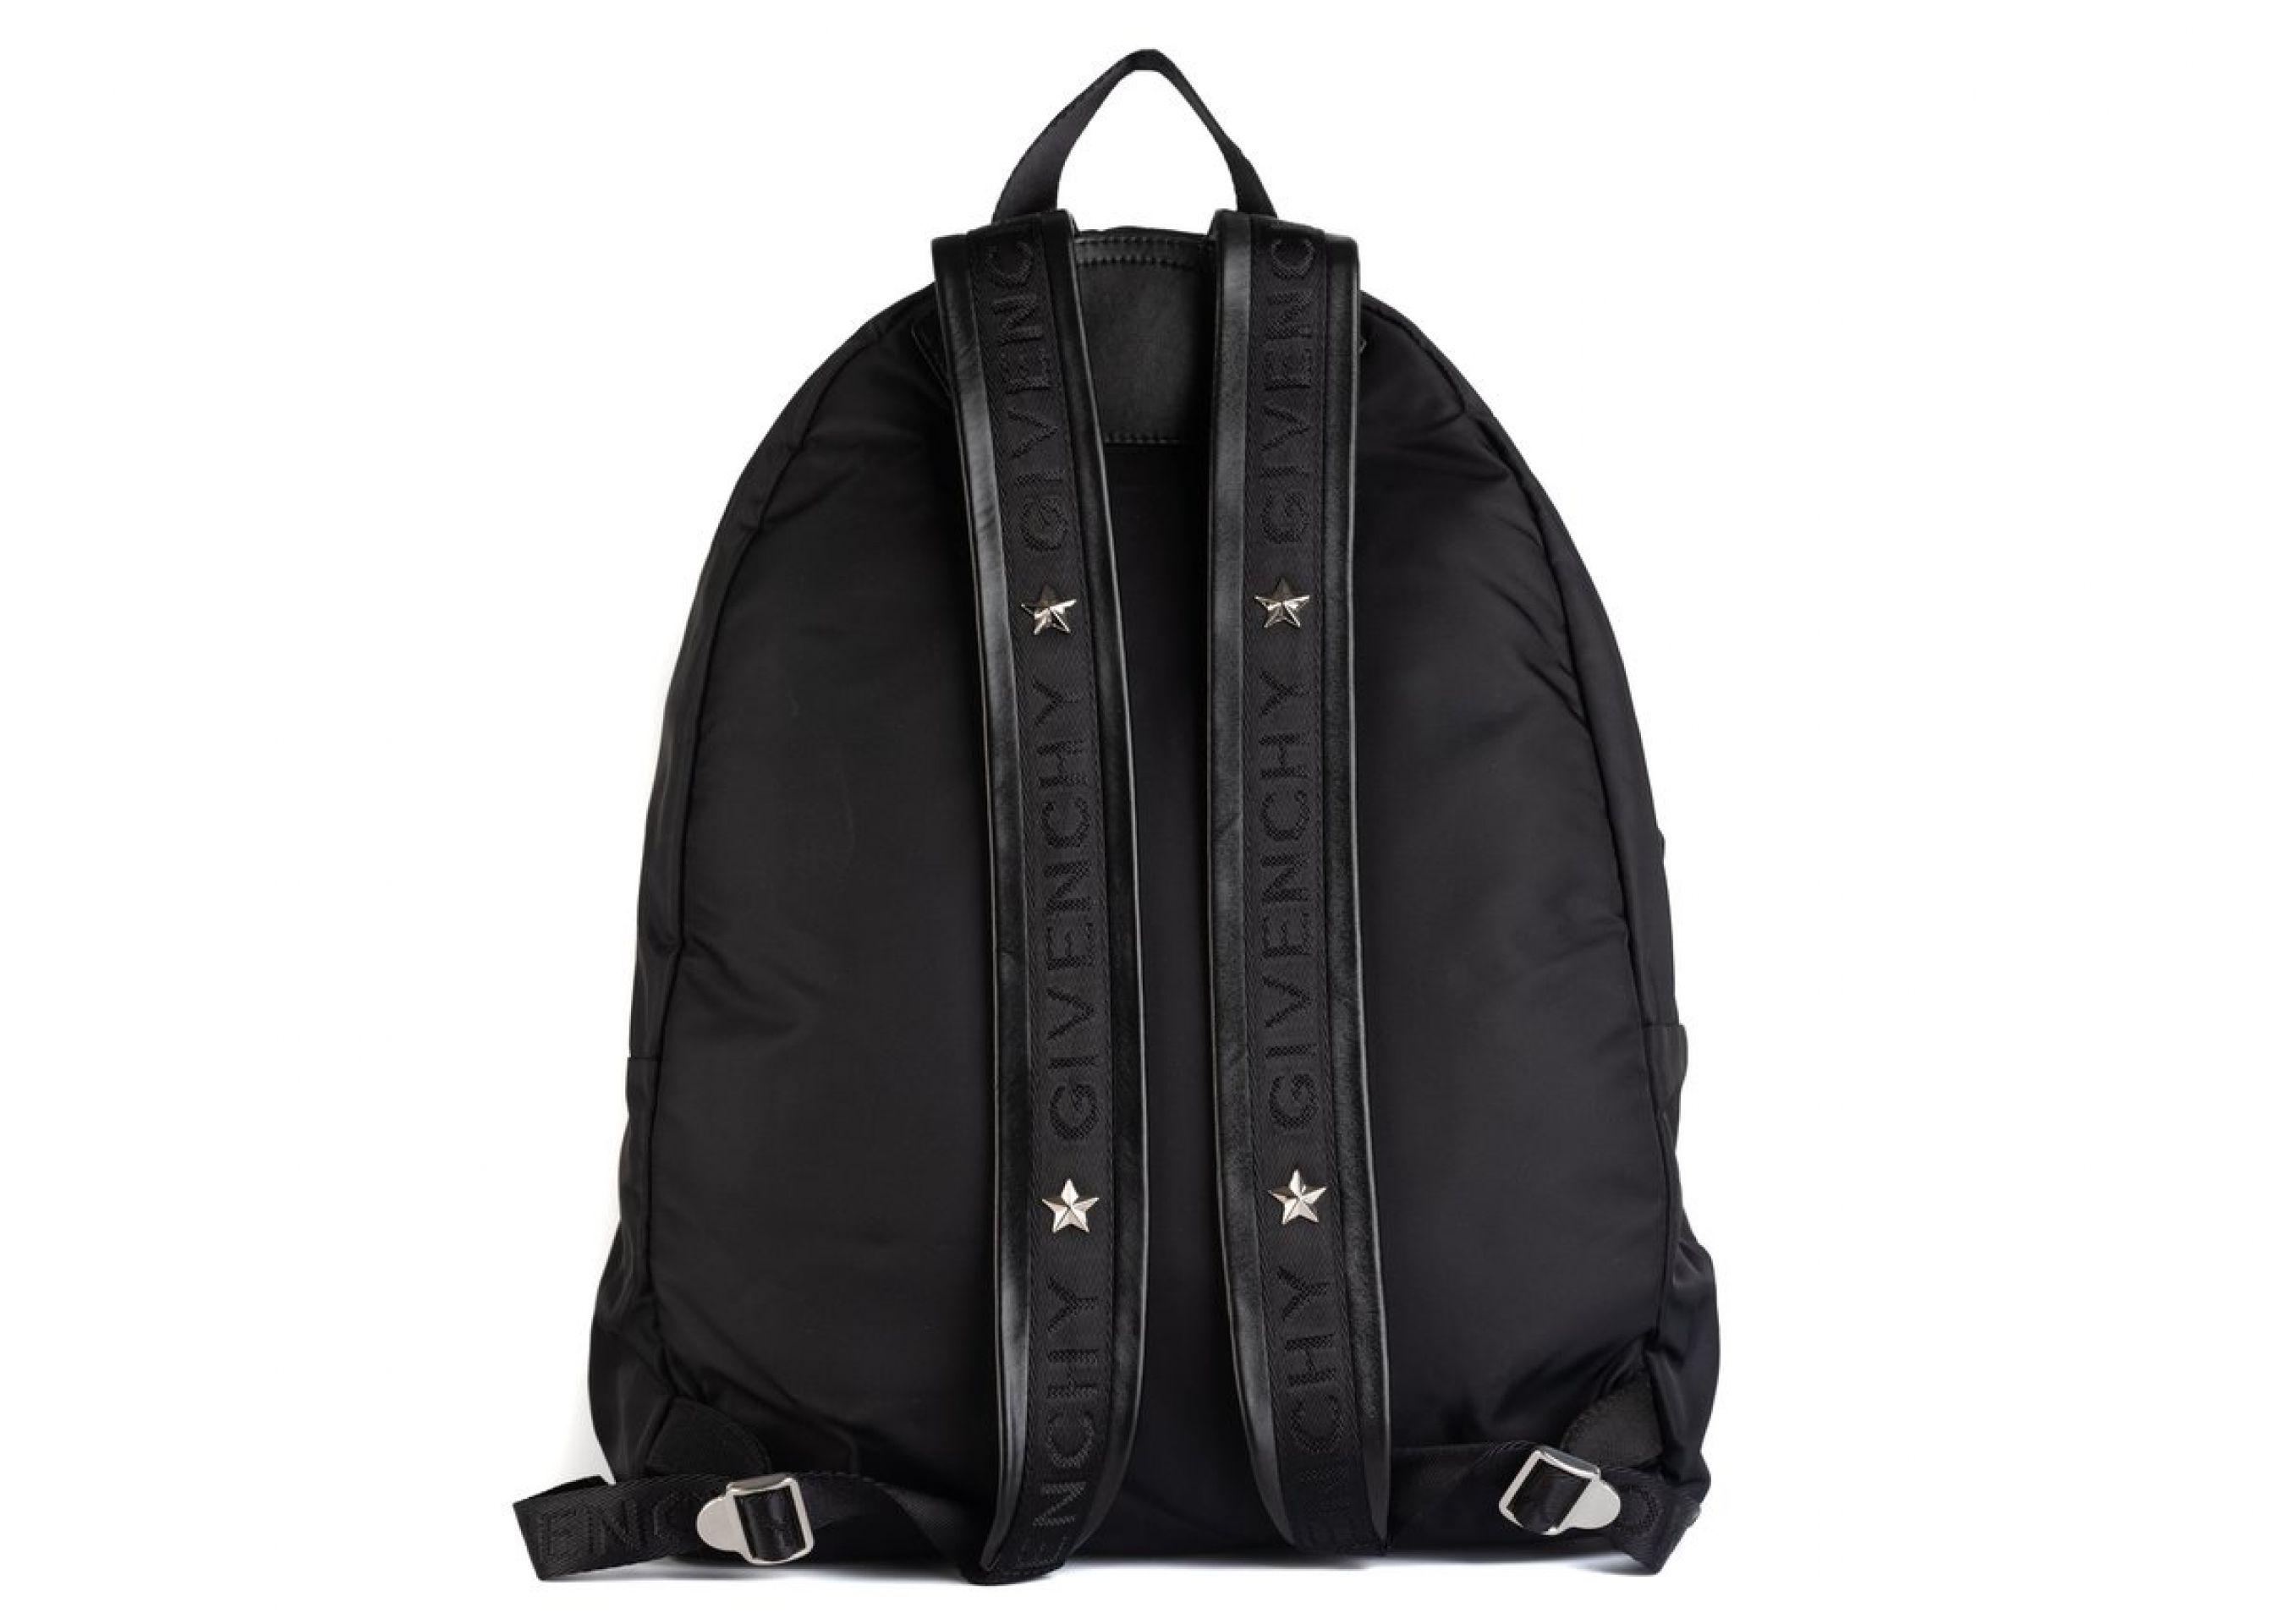 GIVENCHY MEN'SB SKULL PRINTED STAR BACKPACK IN NYLON